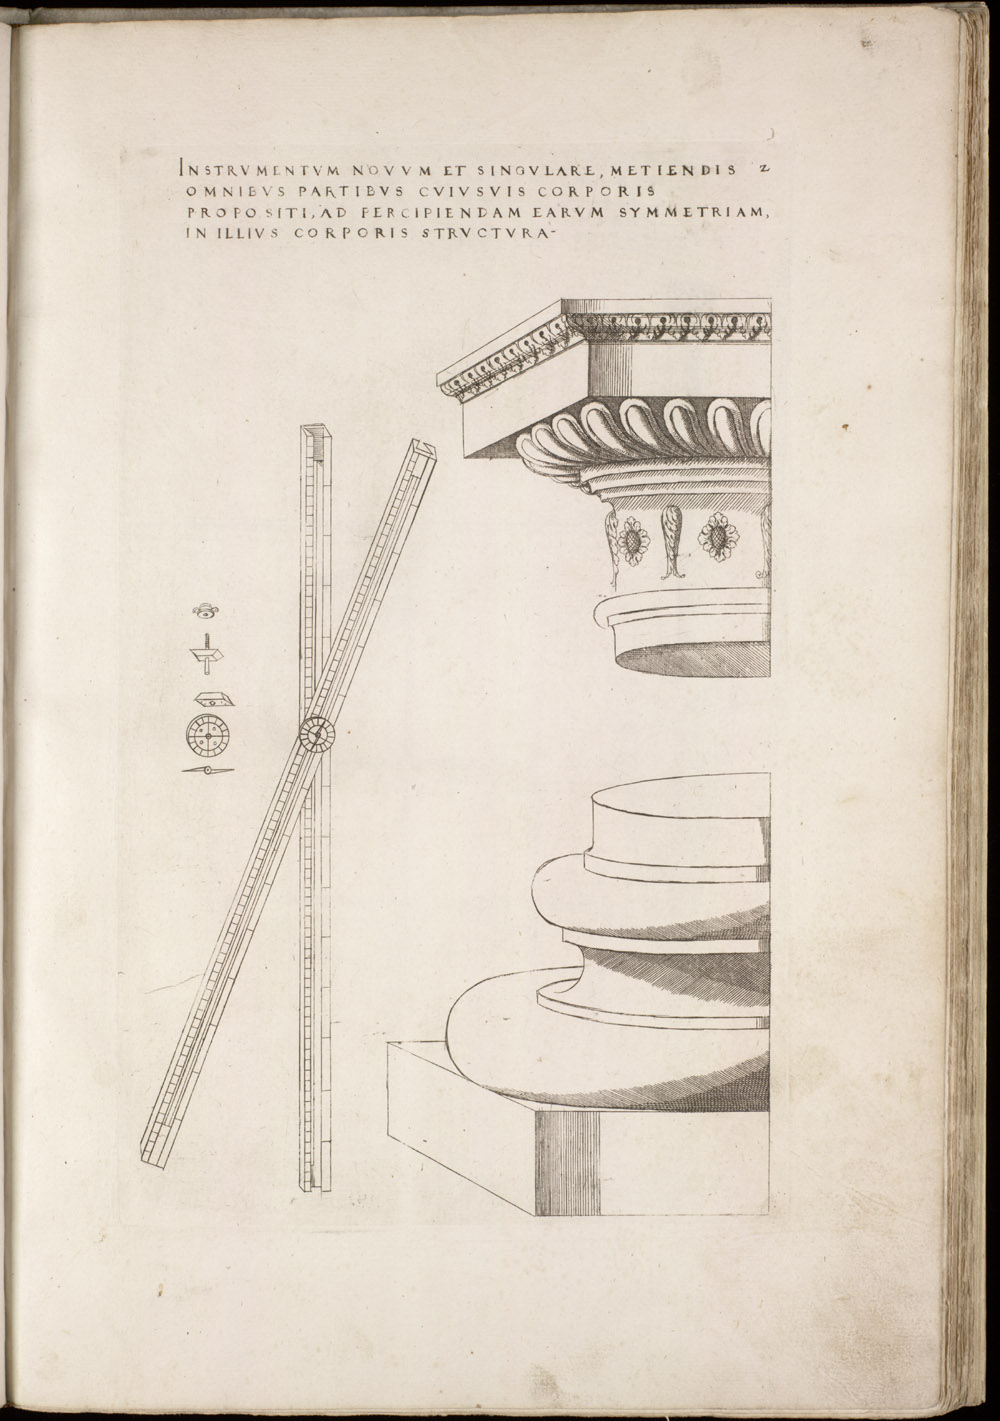 Plate 2 [Measuring instruments],  Image number:SIL4-2-37a